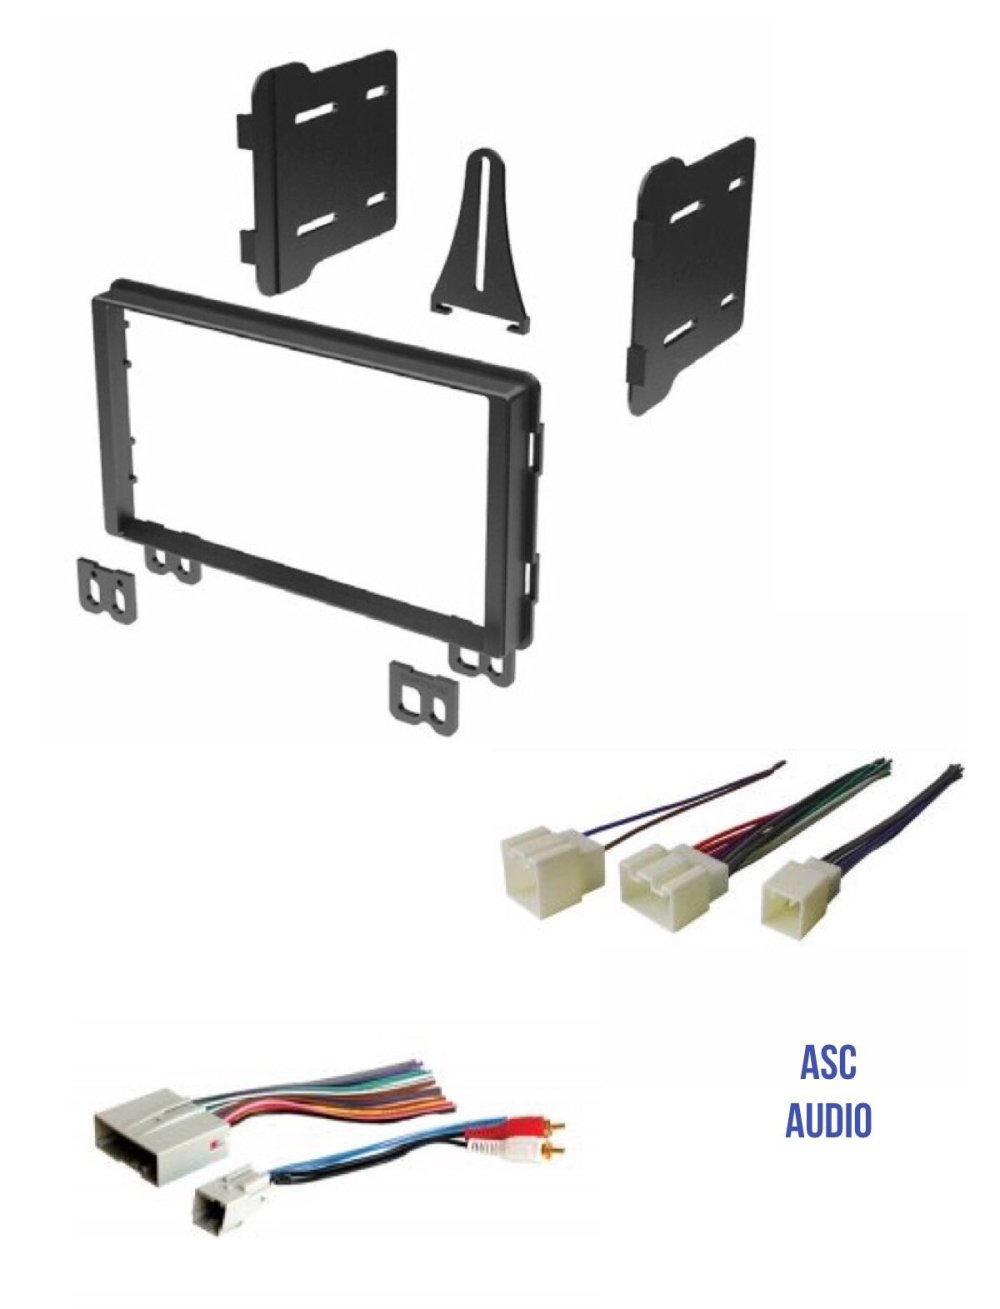 medium resolution of get quotations asc audio double din car stereo radio install dash kit and wire harness for select ford